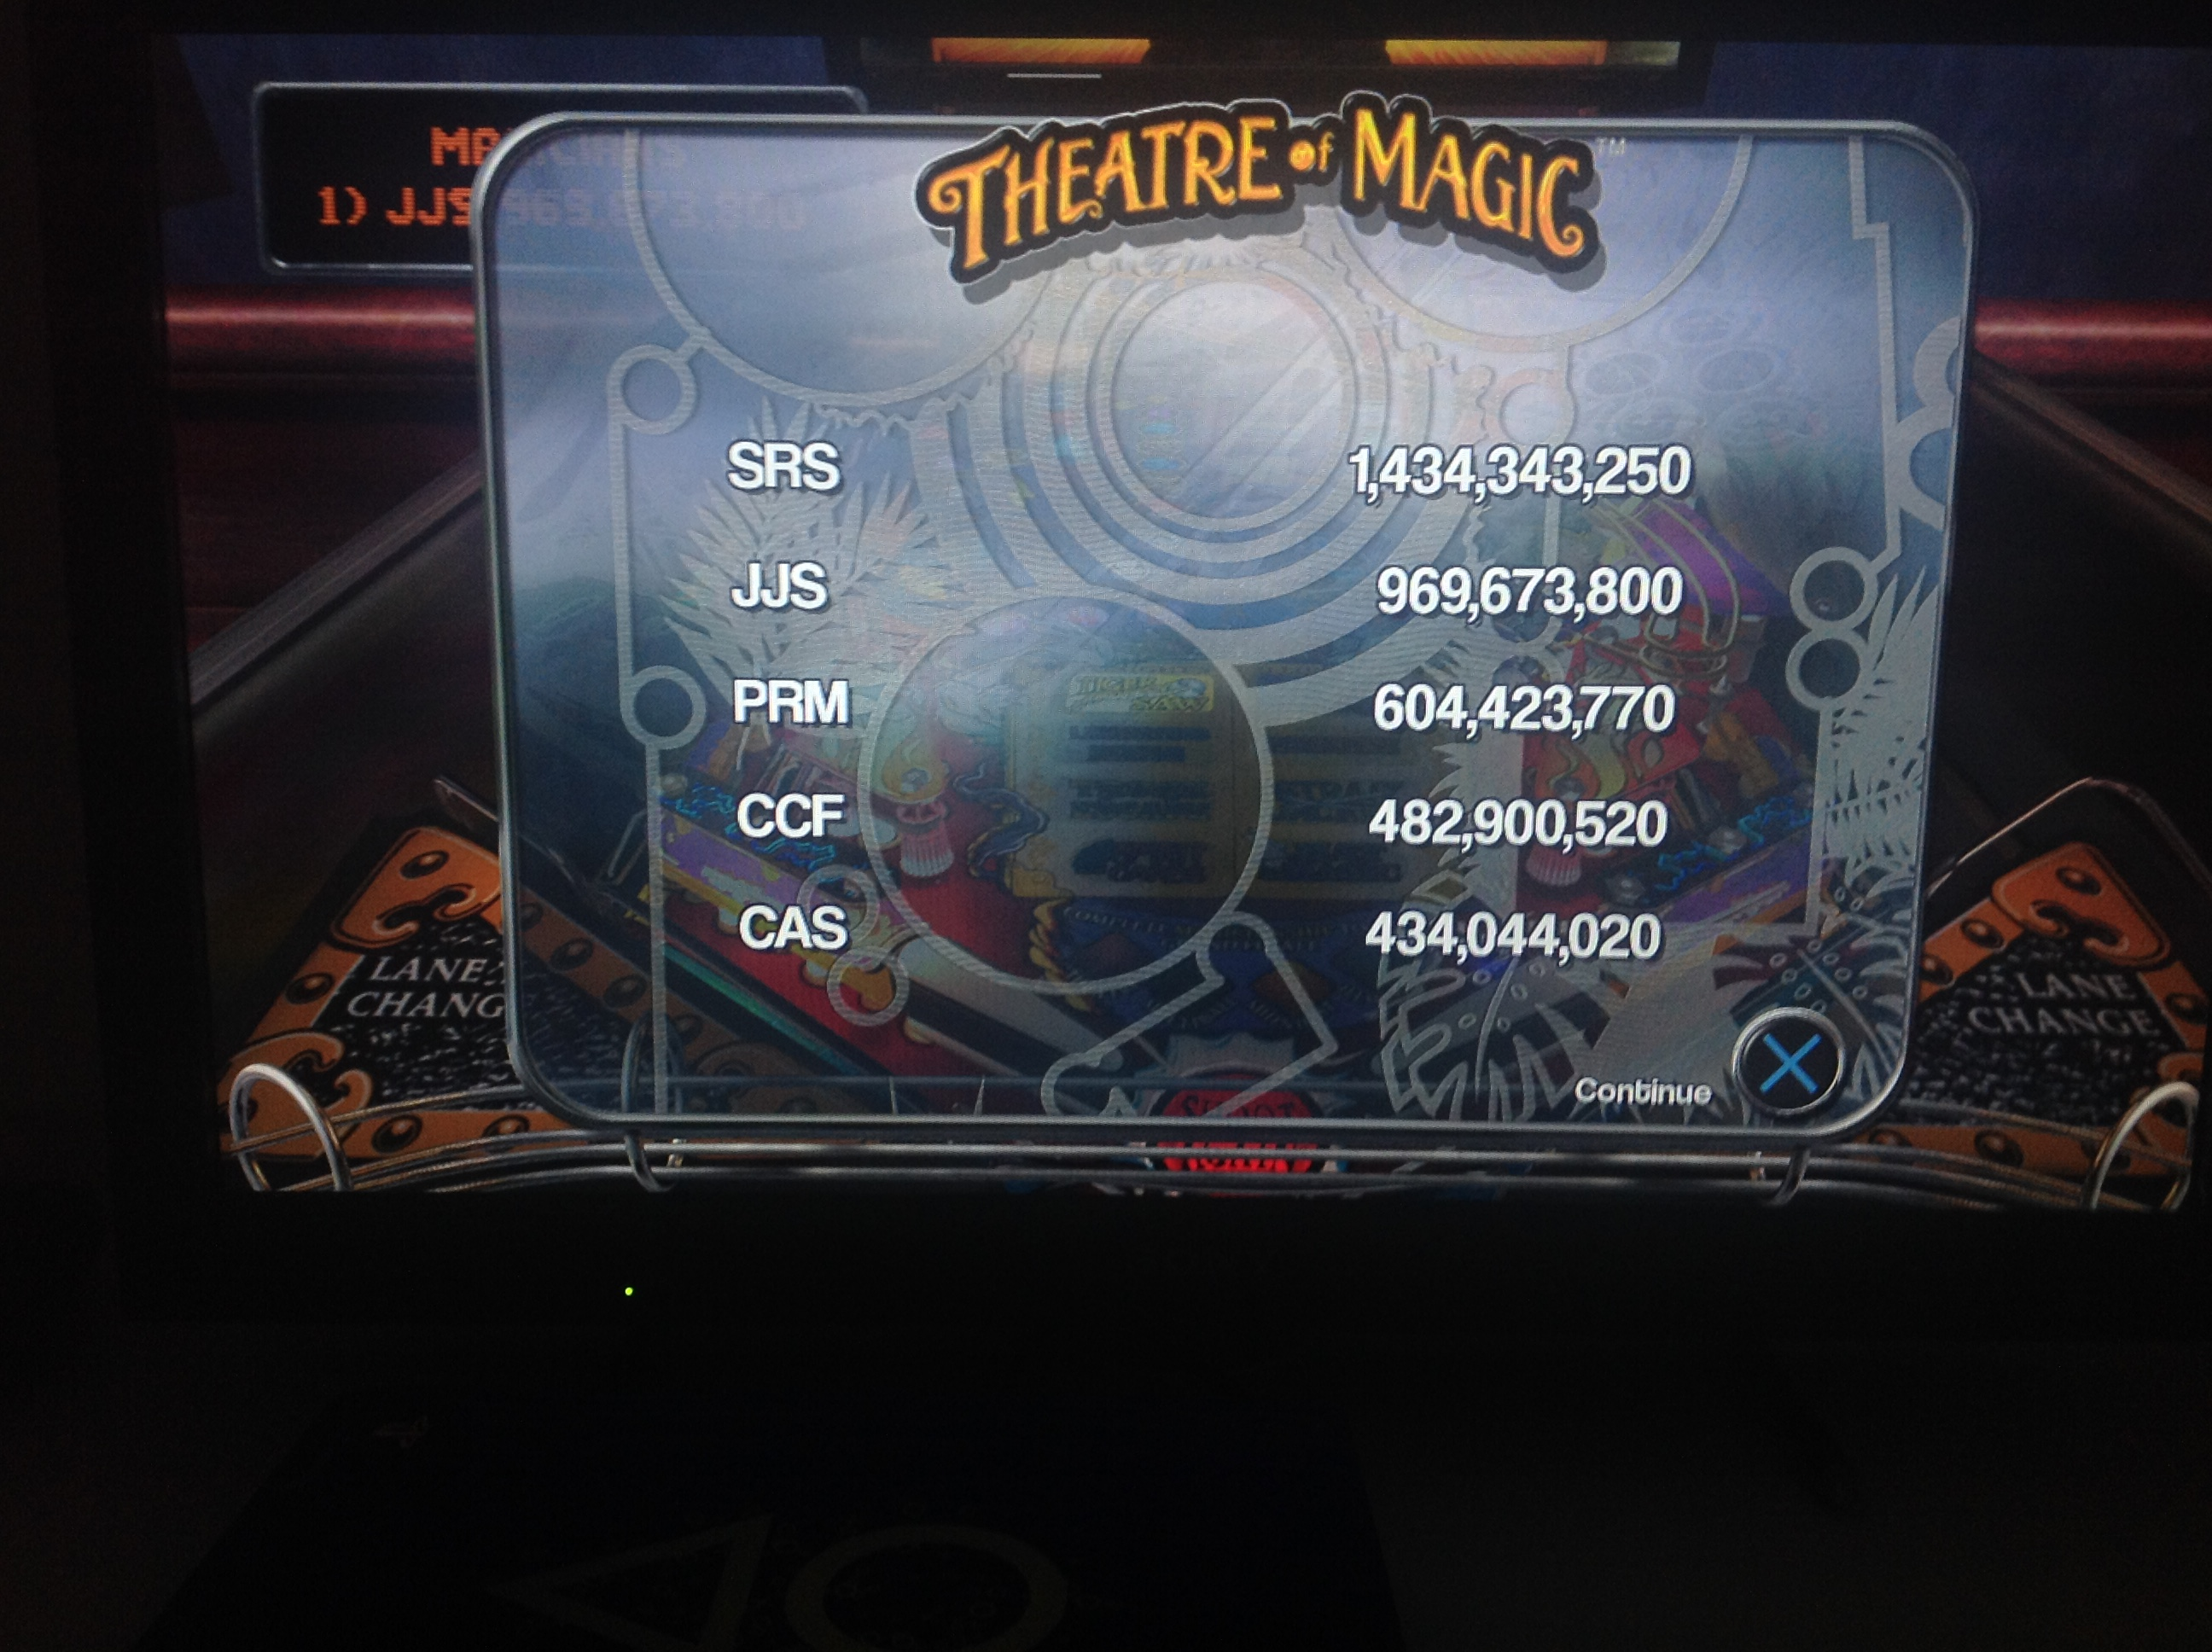 CoCoForest: Pinball Arcade: Theatre of Magic (Playstation 4) 482,900,520 points on 2018-07-06 14:55:39